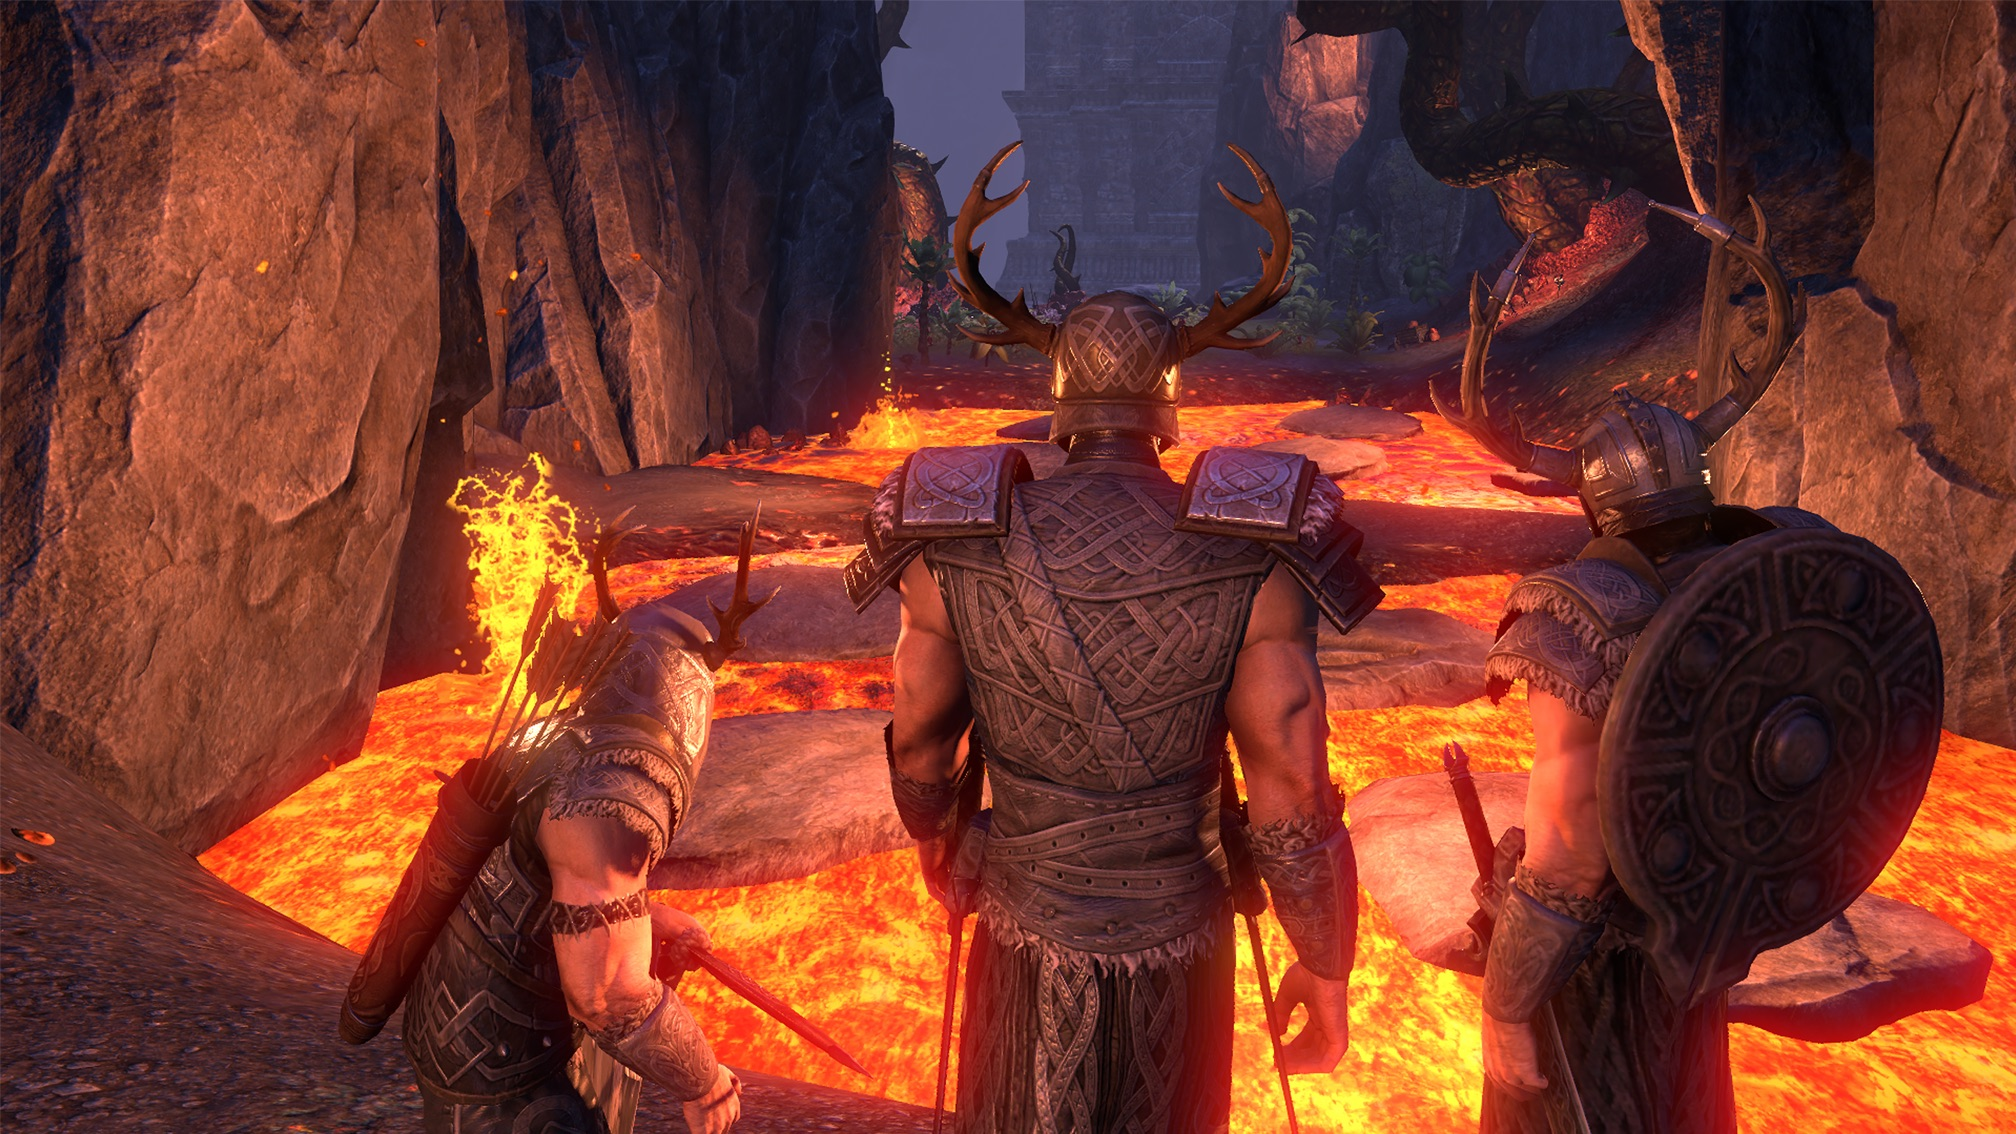 A fiery Oblivion Gate realm in The Elder Scrolls Online: Blackwood. There are three male characters on screen with their backs facing the camera. One has a shield on their back, one has a quiver of arrows, and the middle has antlers on their head.